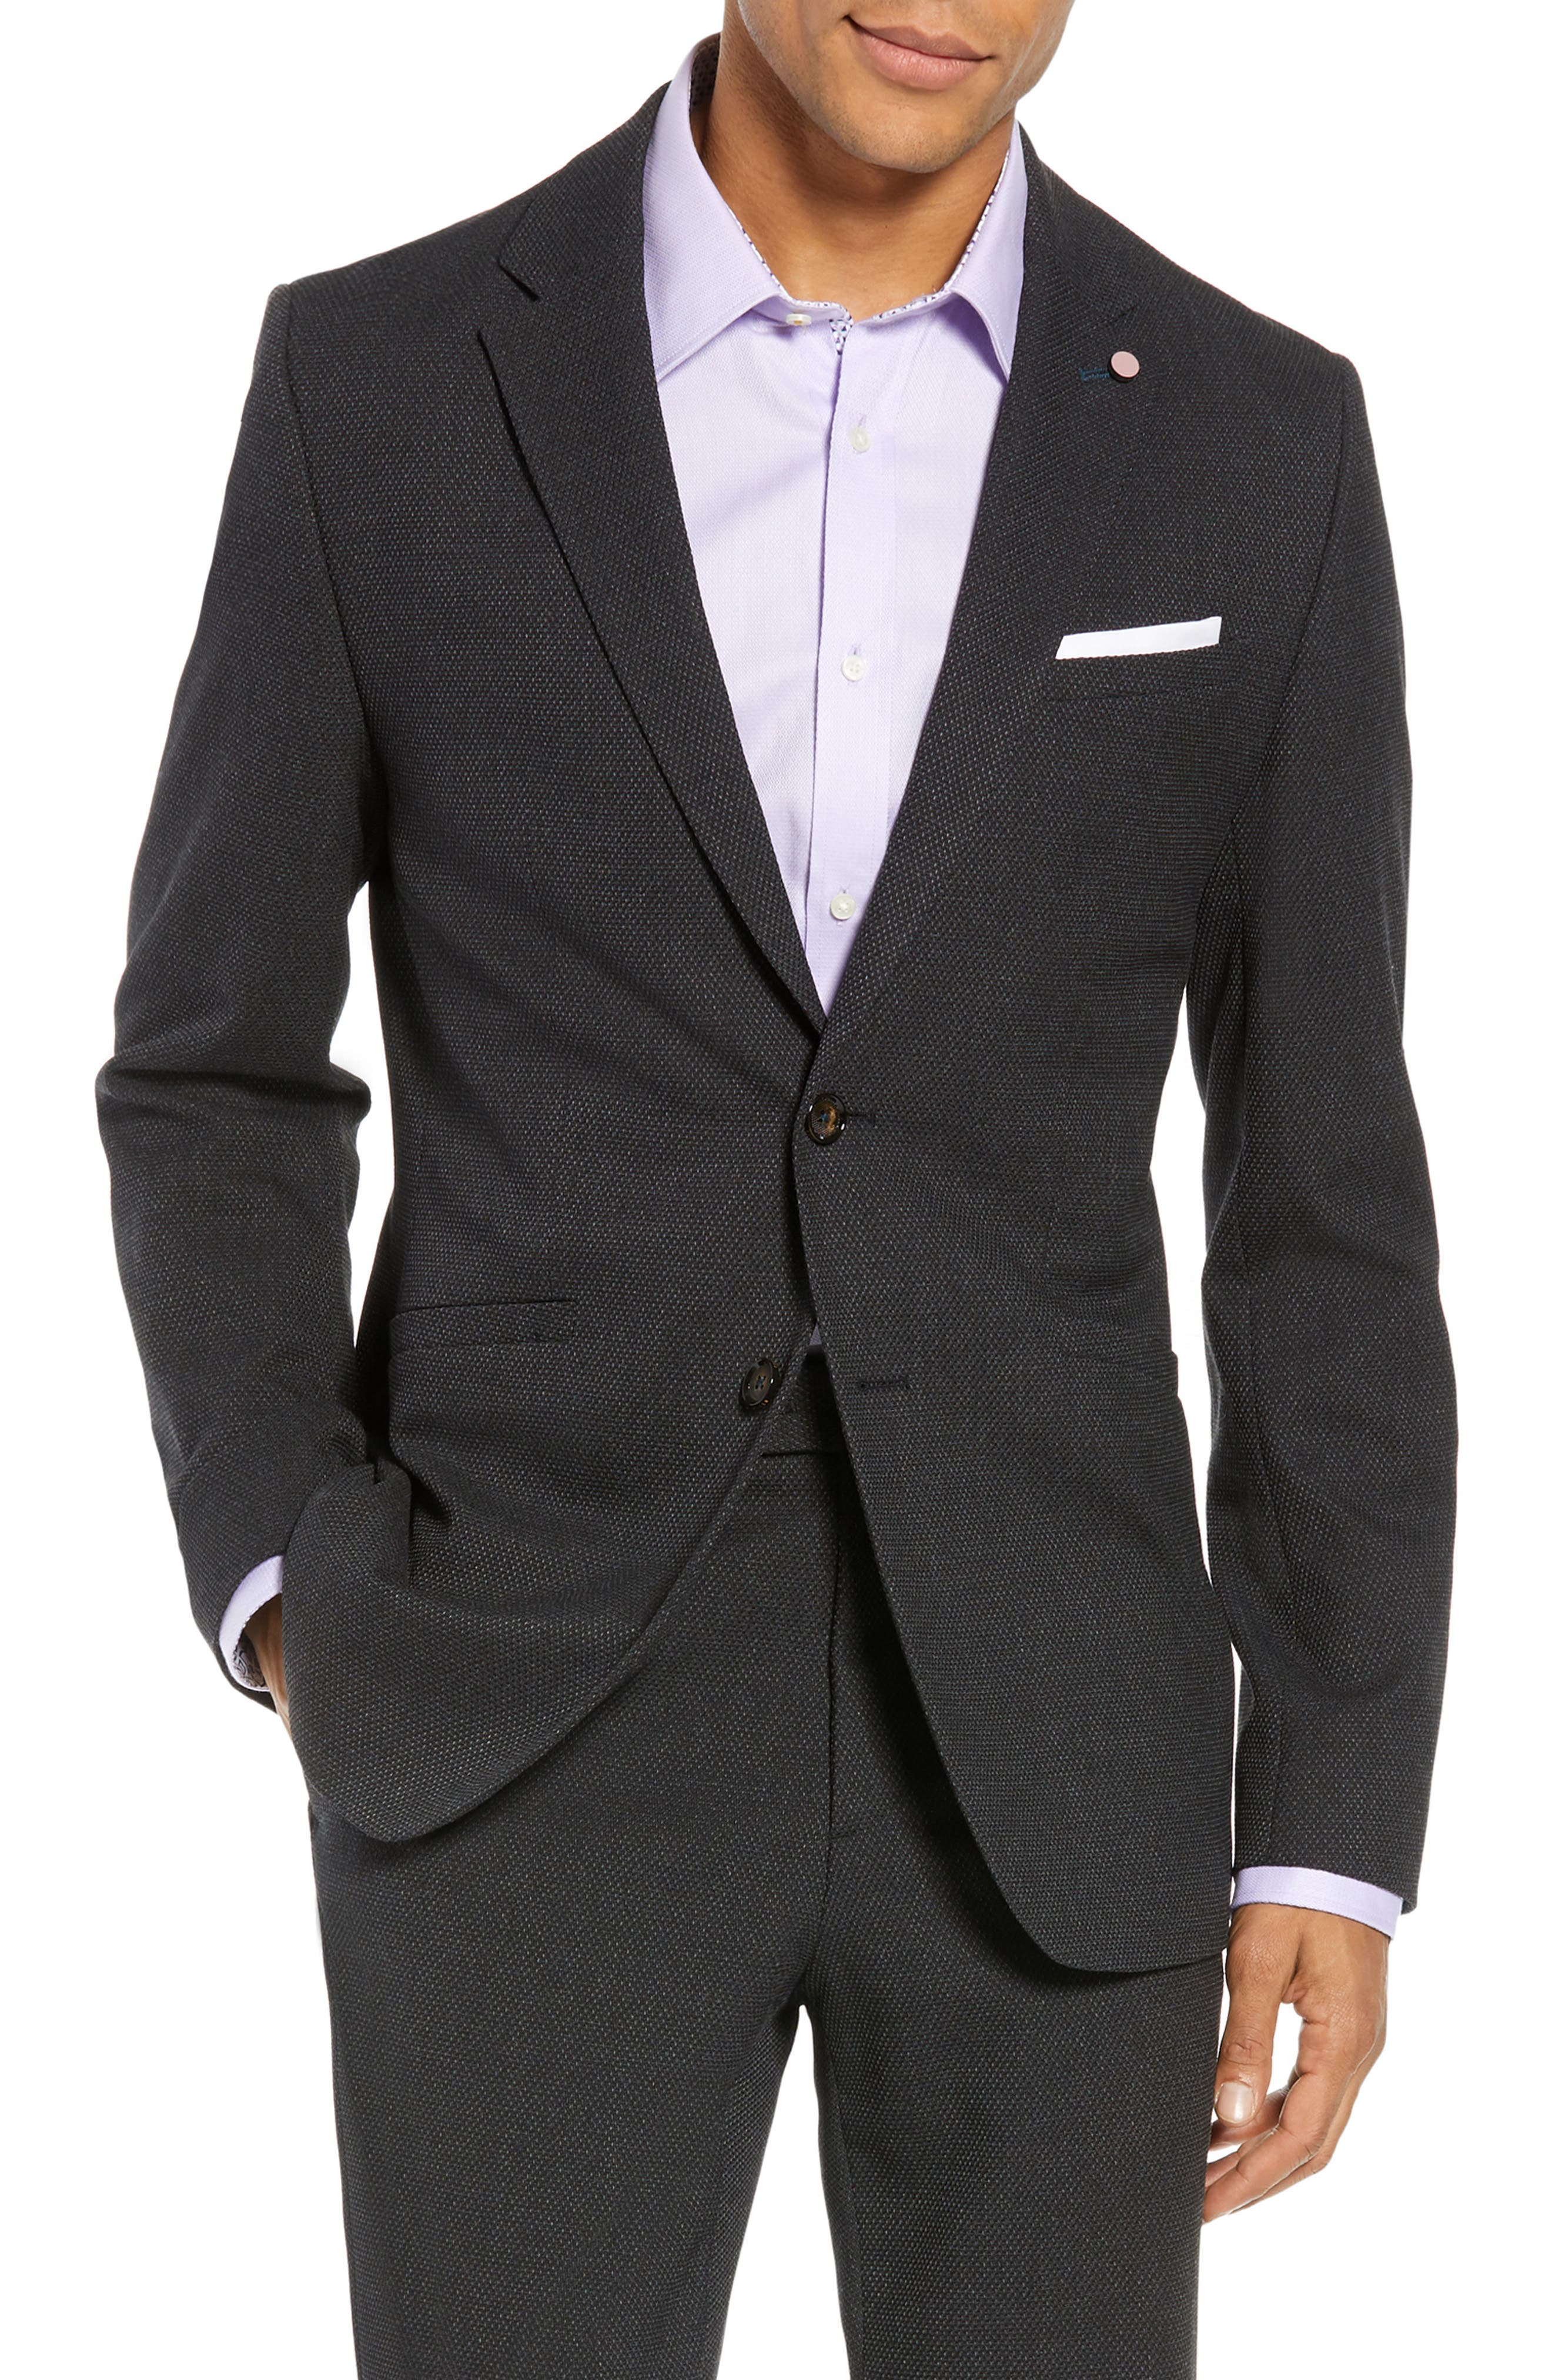 Gorka Slim Fit Suit Jacket,                         Main,                         color, CHARCOAL